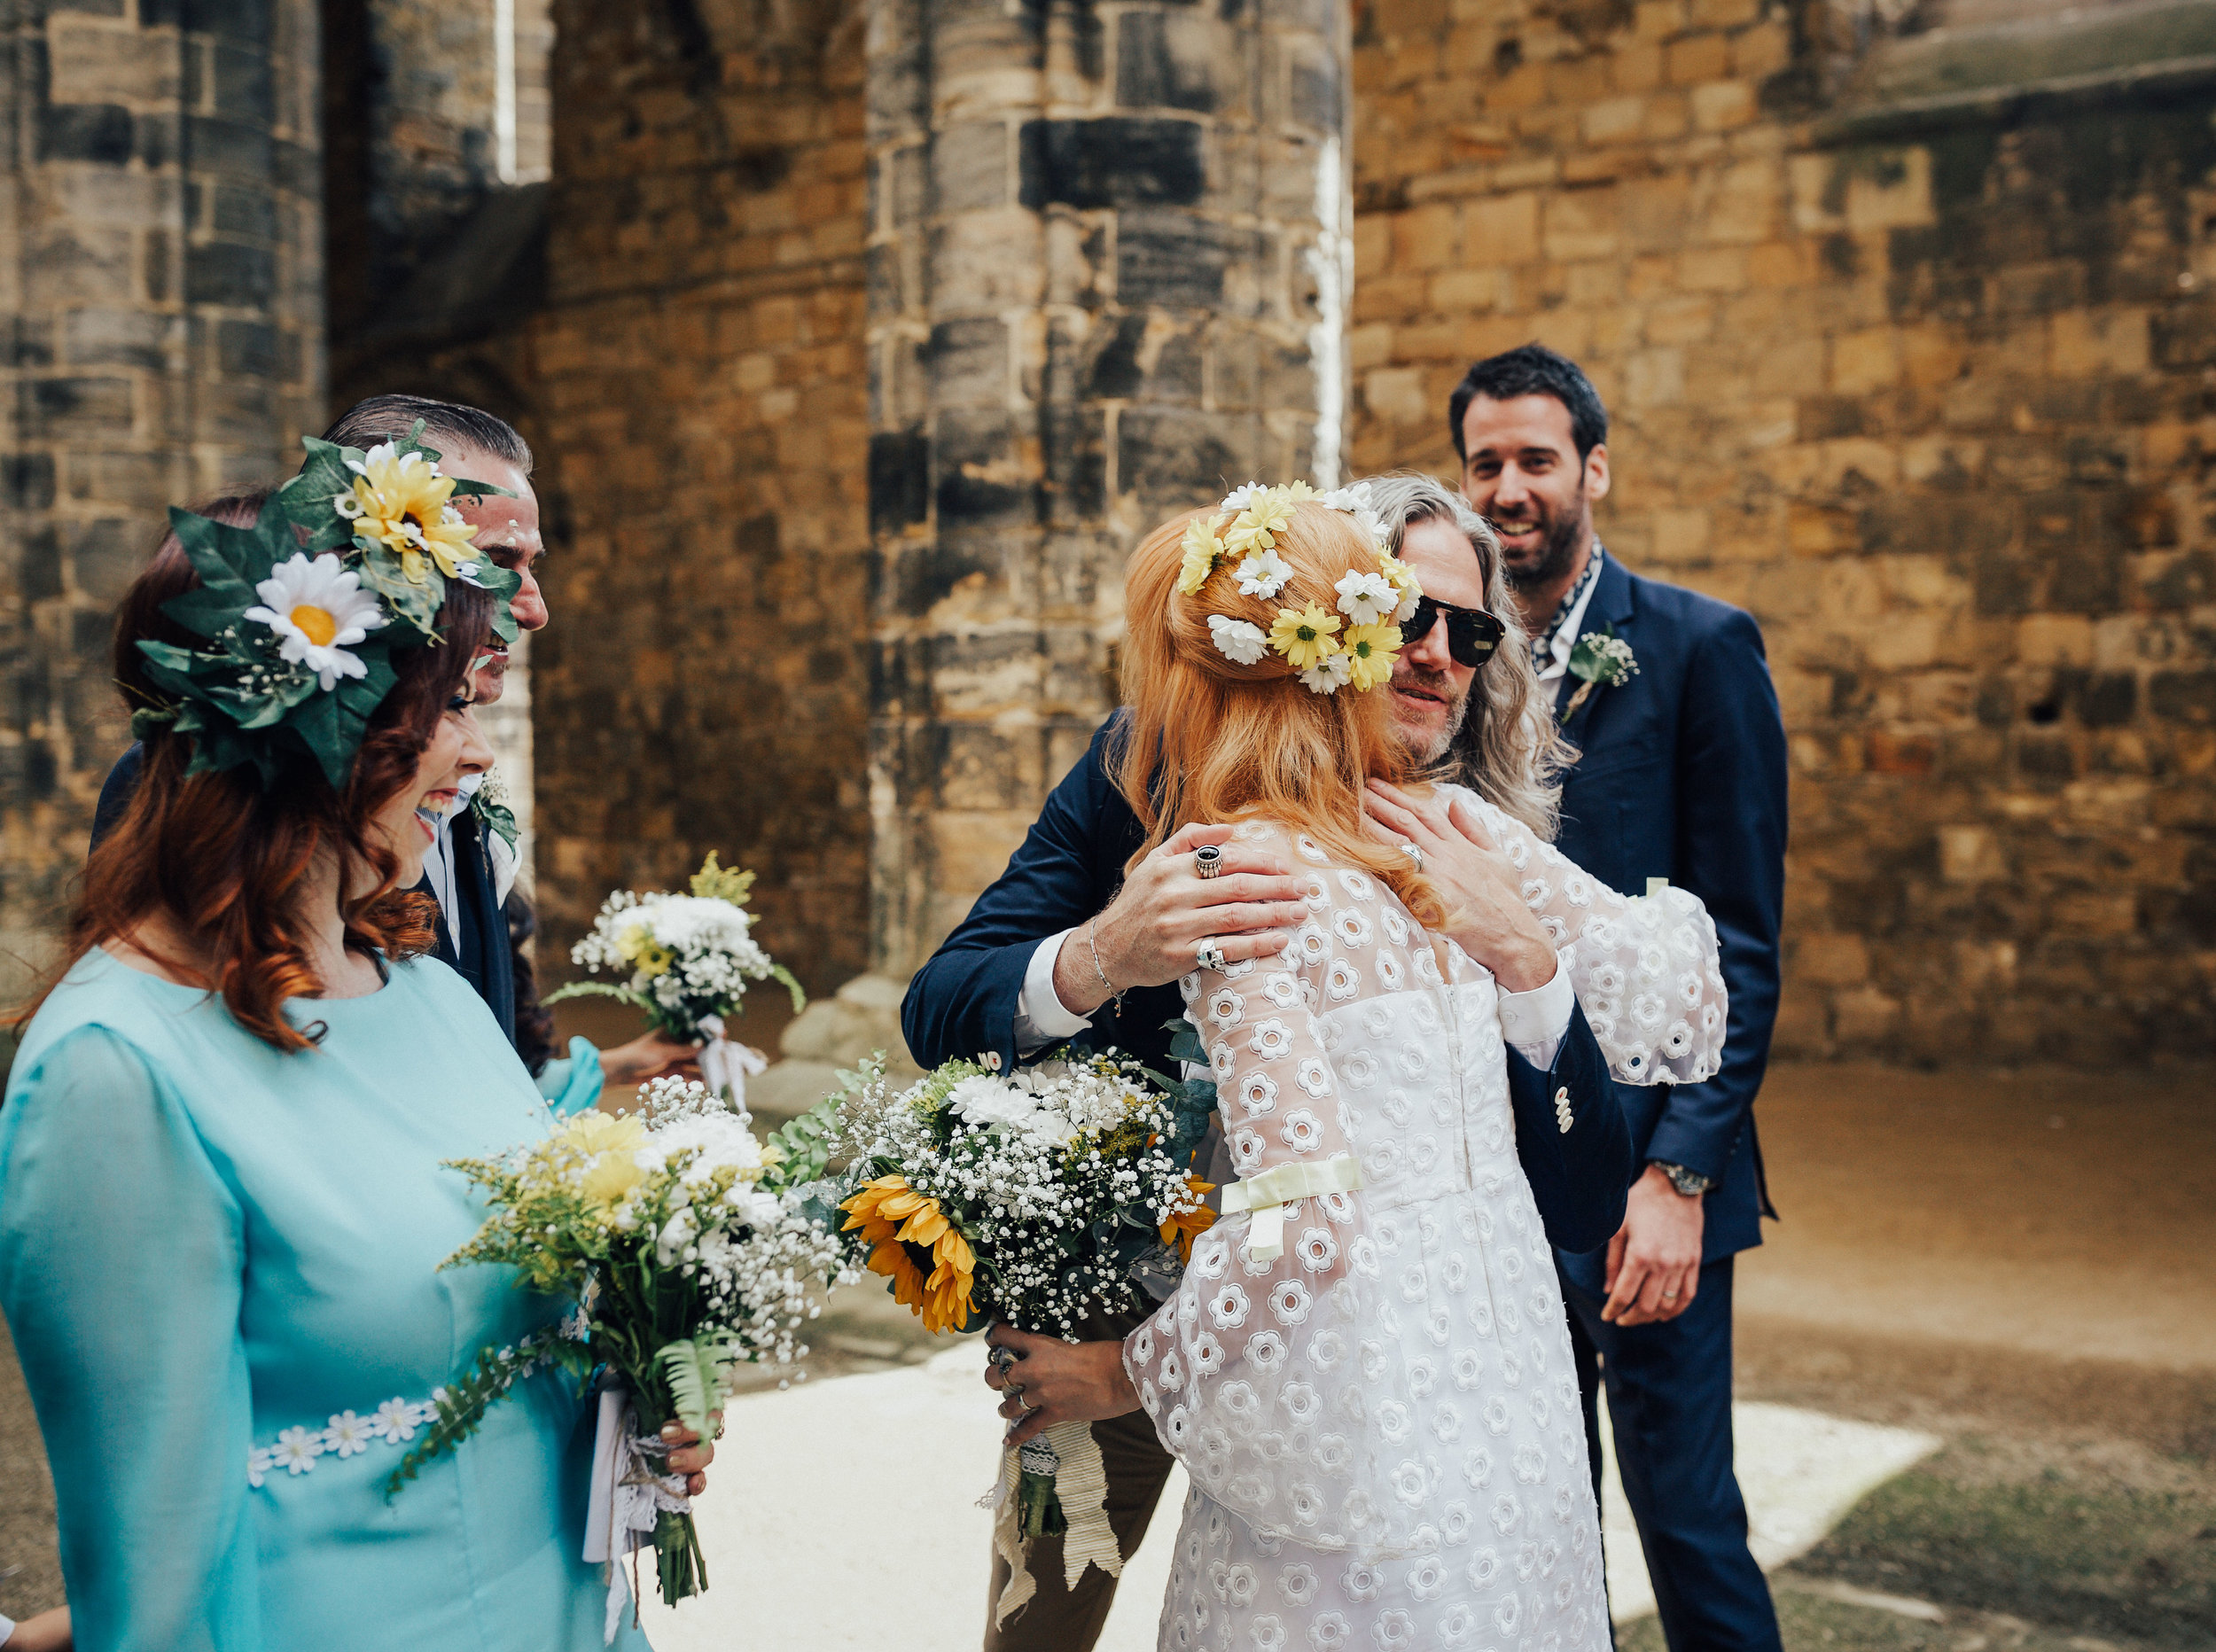 ALTERNATIVE_WEDDING_PHOTOGRAPHY_LEEDS_UK_PJ_PHILLIPS_PHOTOGRAPHY_79.jpg